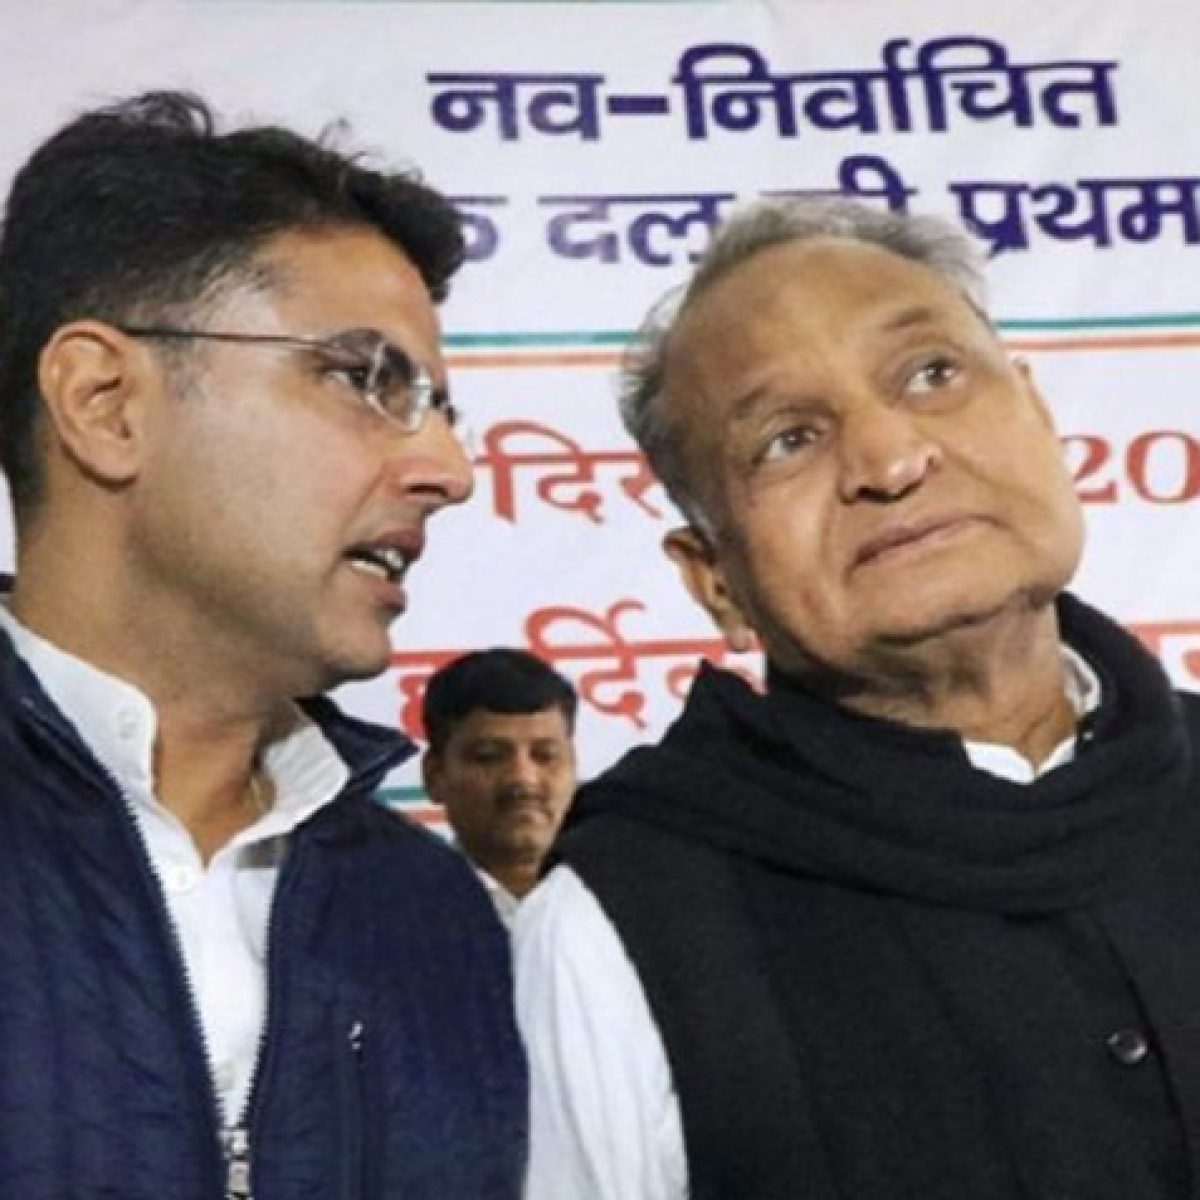 Rajasthan government spends Rs 25 crore on advertisements which had photographs of Ashok Gehlot, not Sachin Pilot